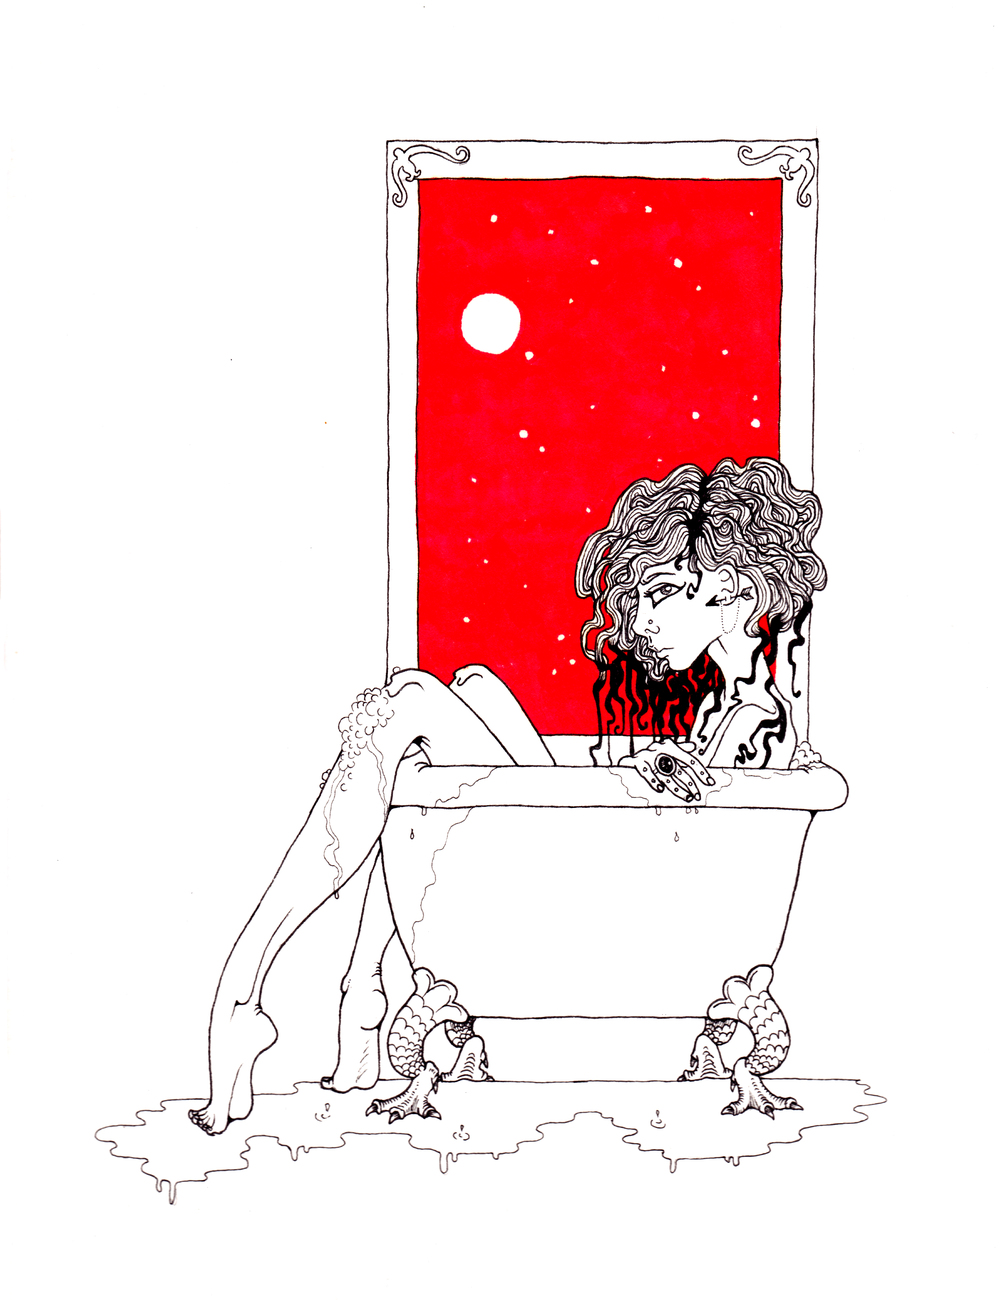 Bathtub Lady.jpeg